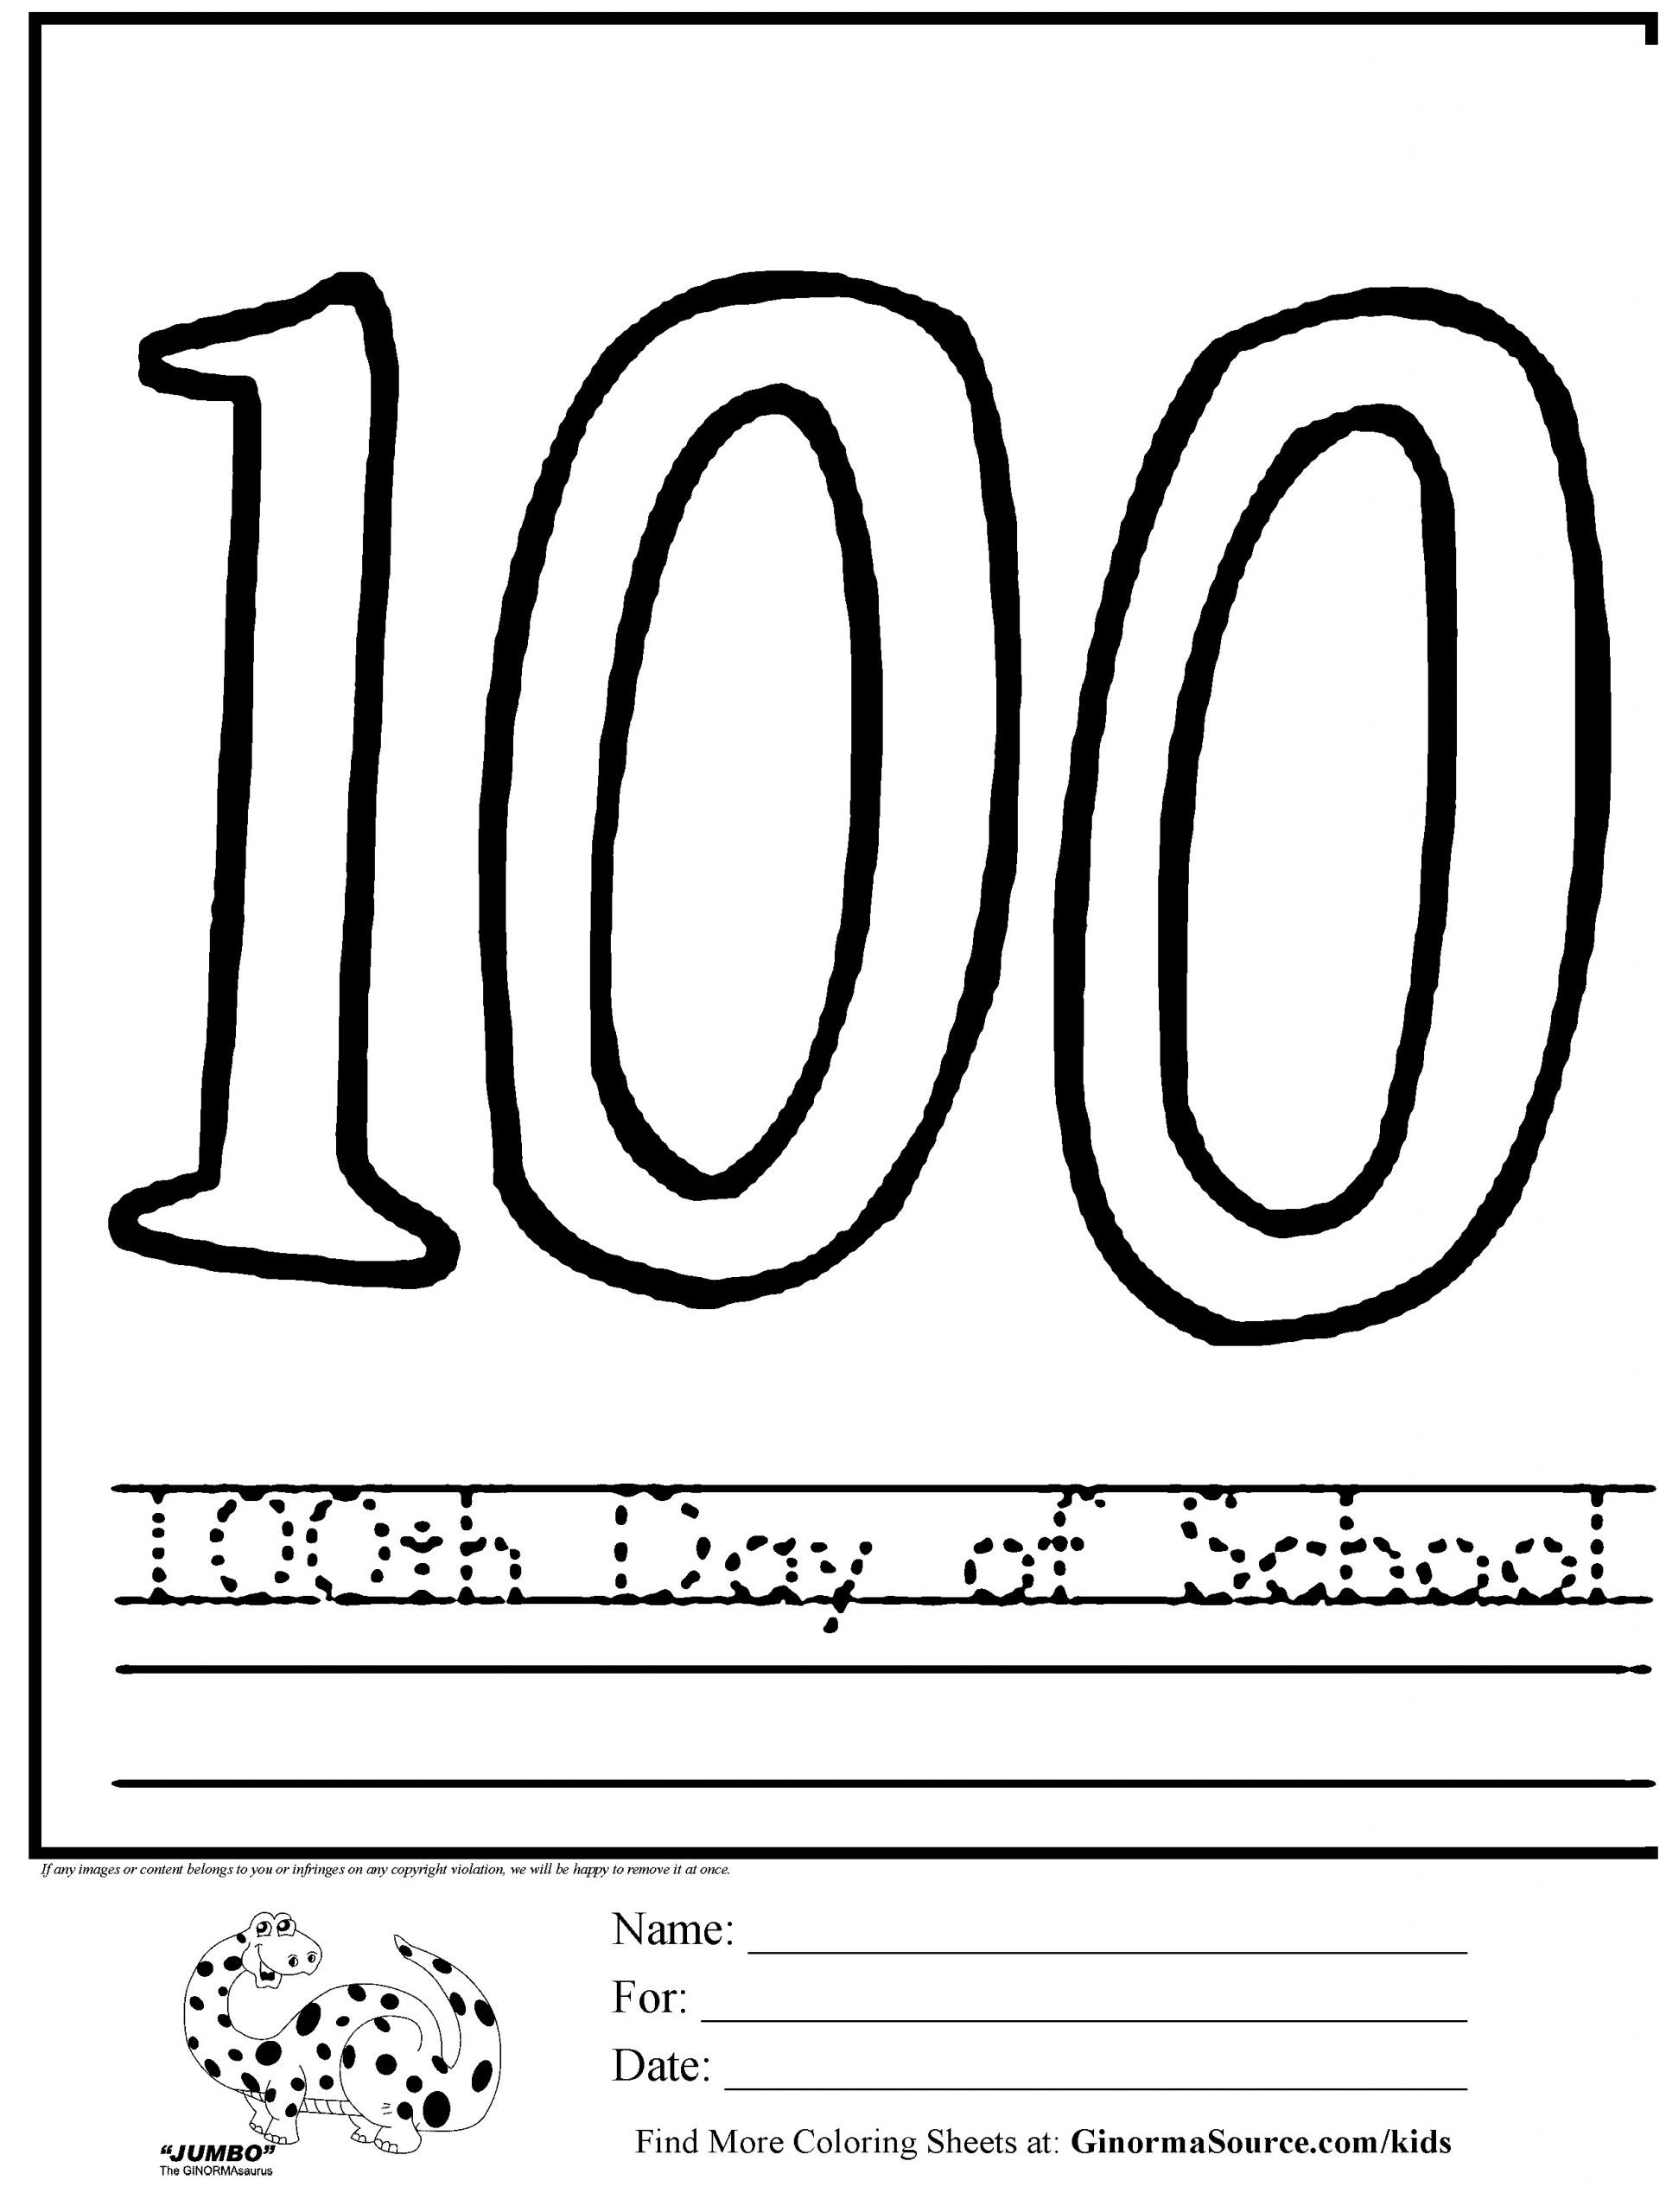 100th Day Of School Worksheets Coloring Pages School Coloring Pages to Print New 100th